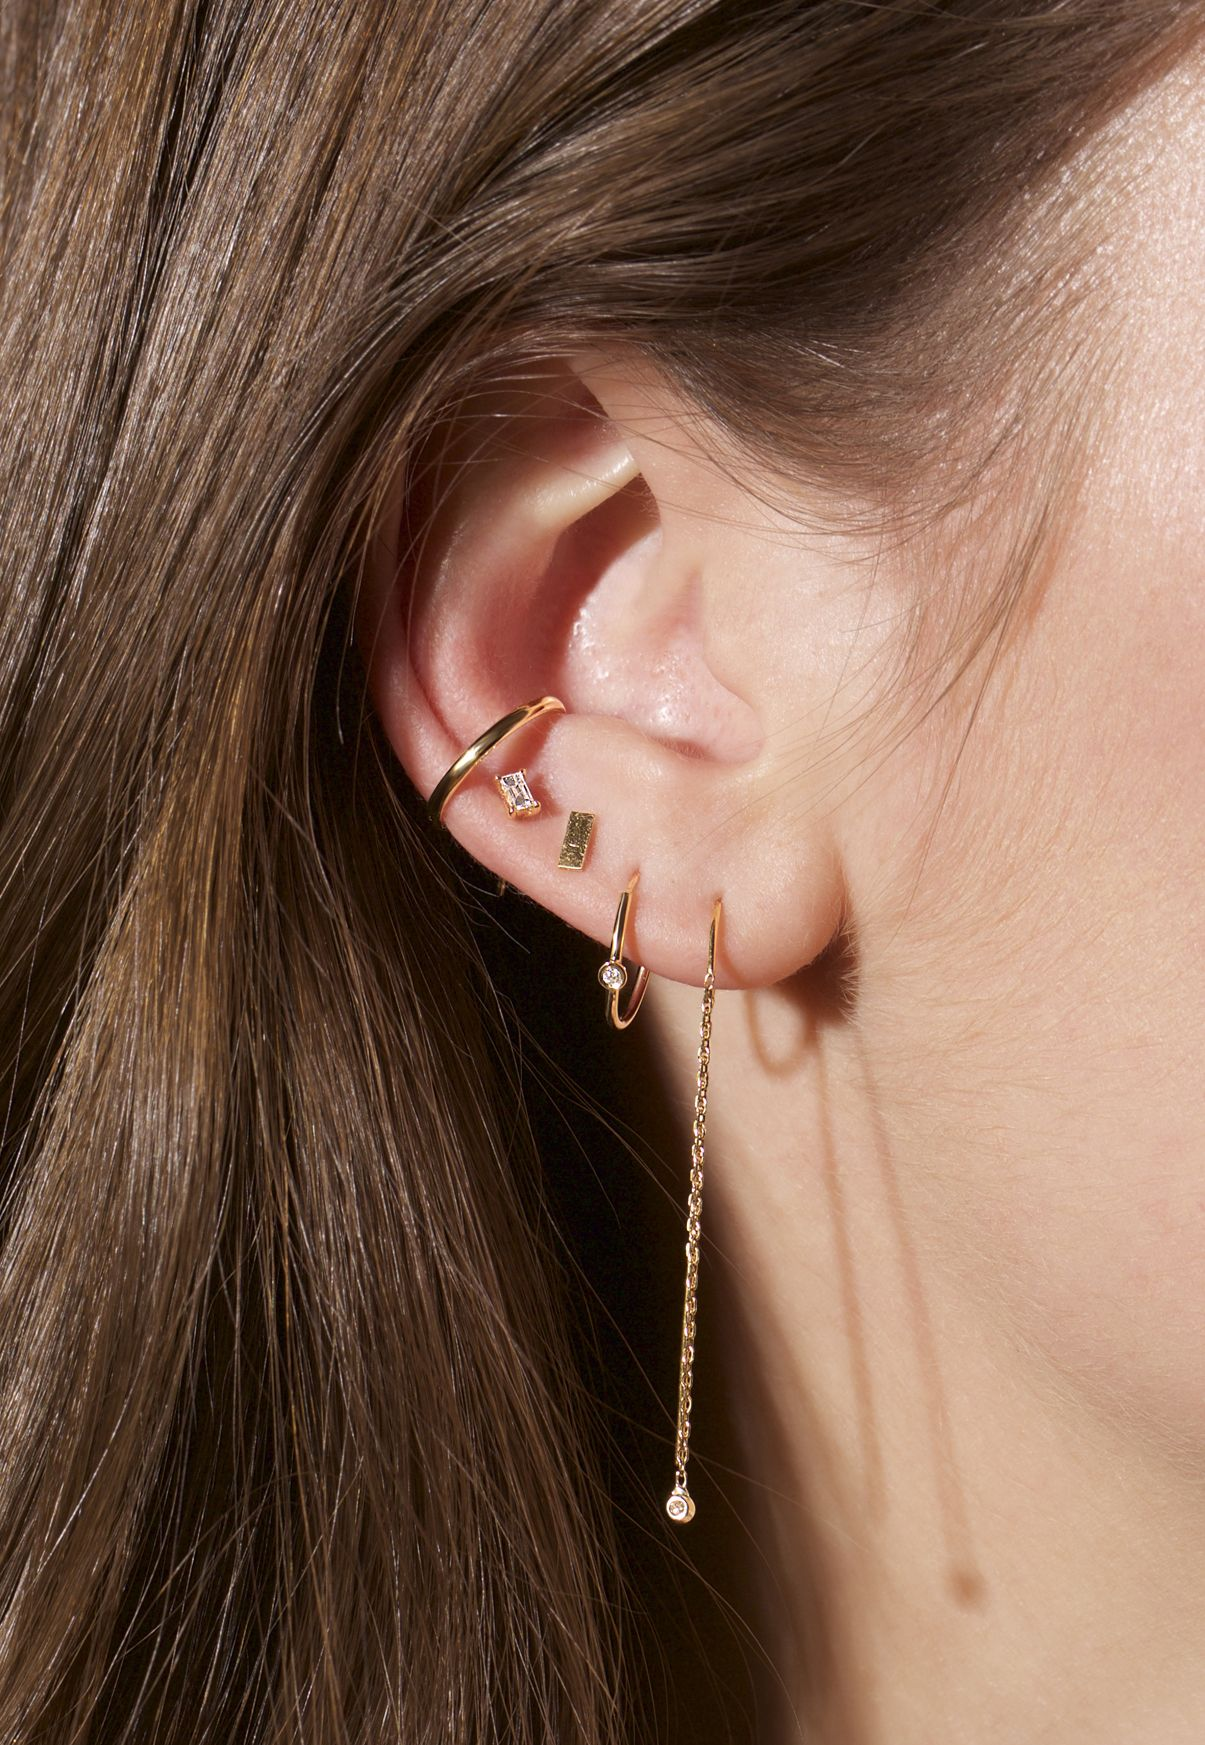 95bf8fe2d Ear stacking at new levels with S&S Diamonds and XYZ pieces - Stone & Strand